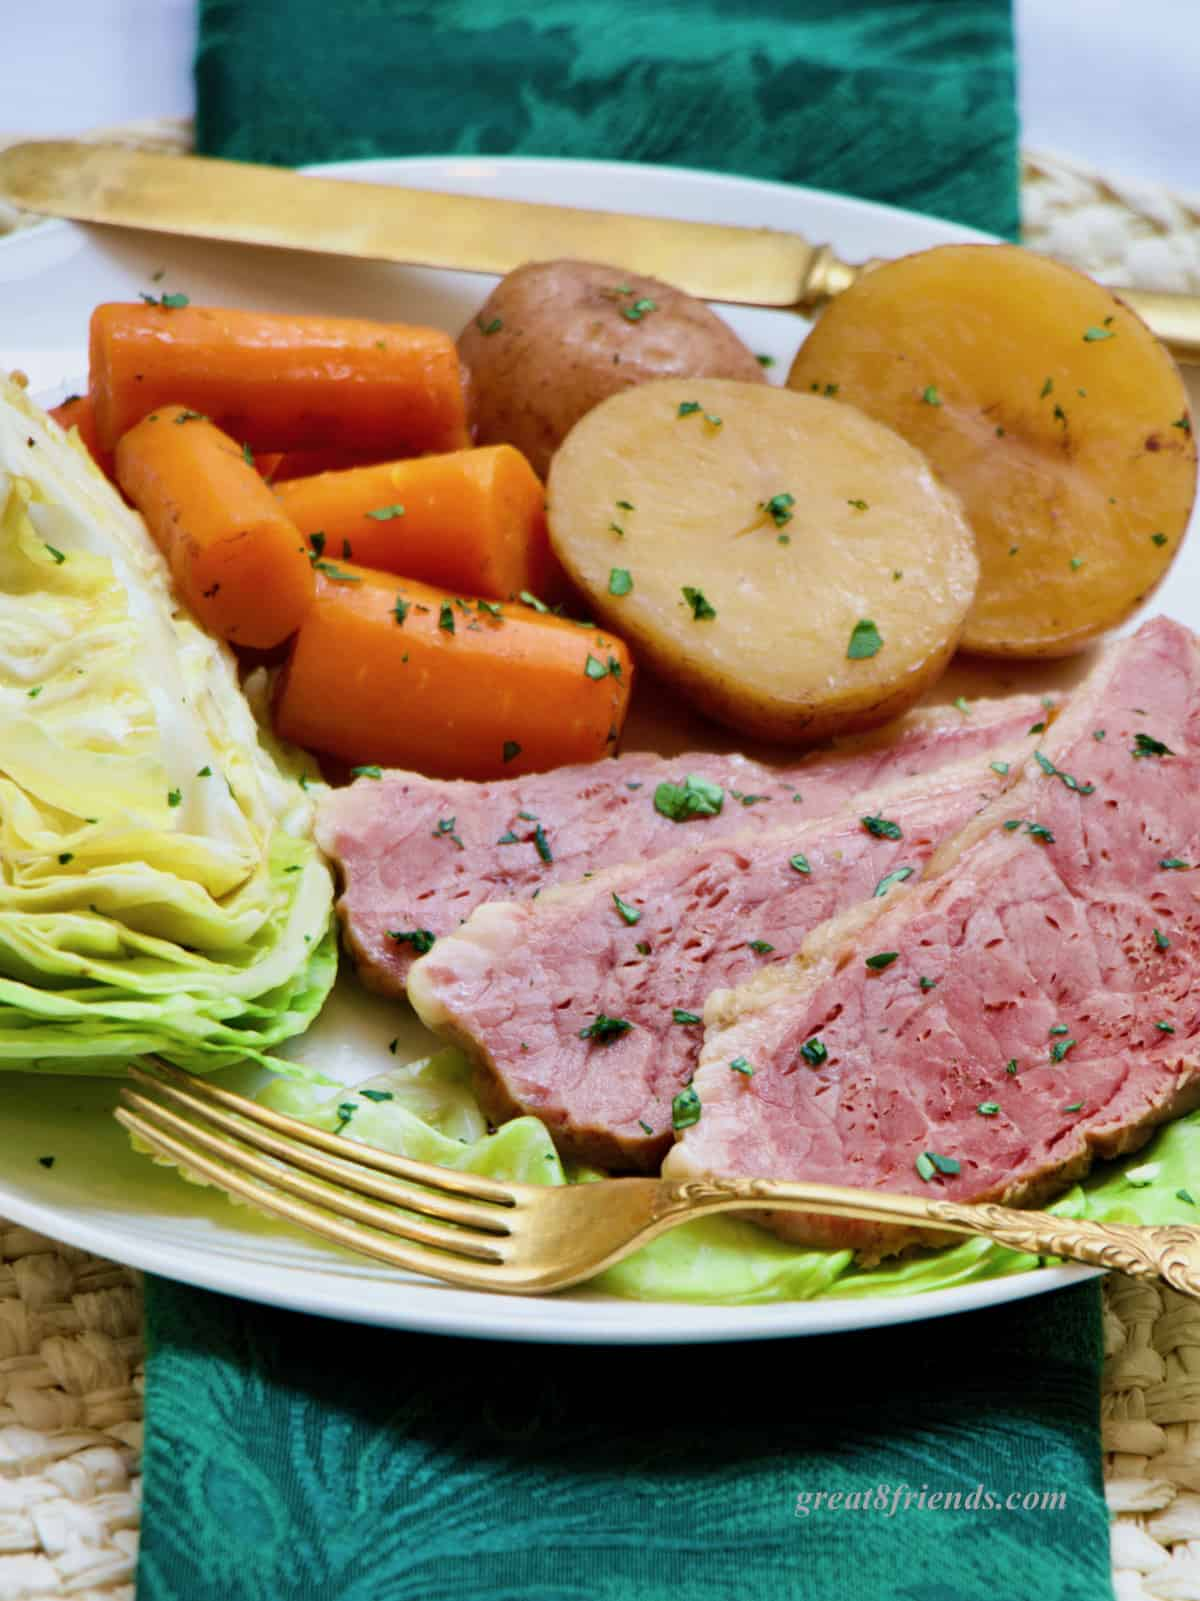 Three slices of corned beef, with a wedge of cabbage, some carrots and potatoes on a plate.